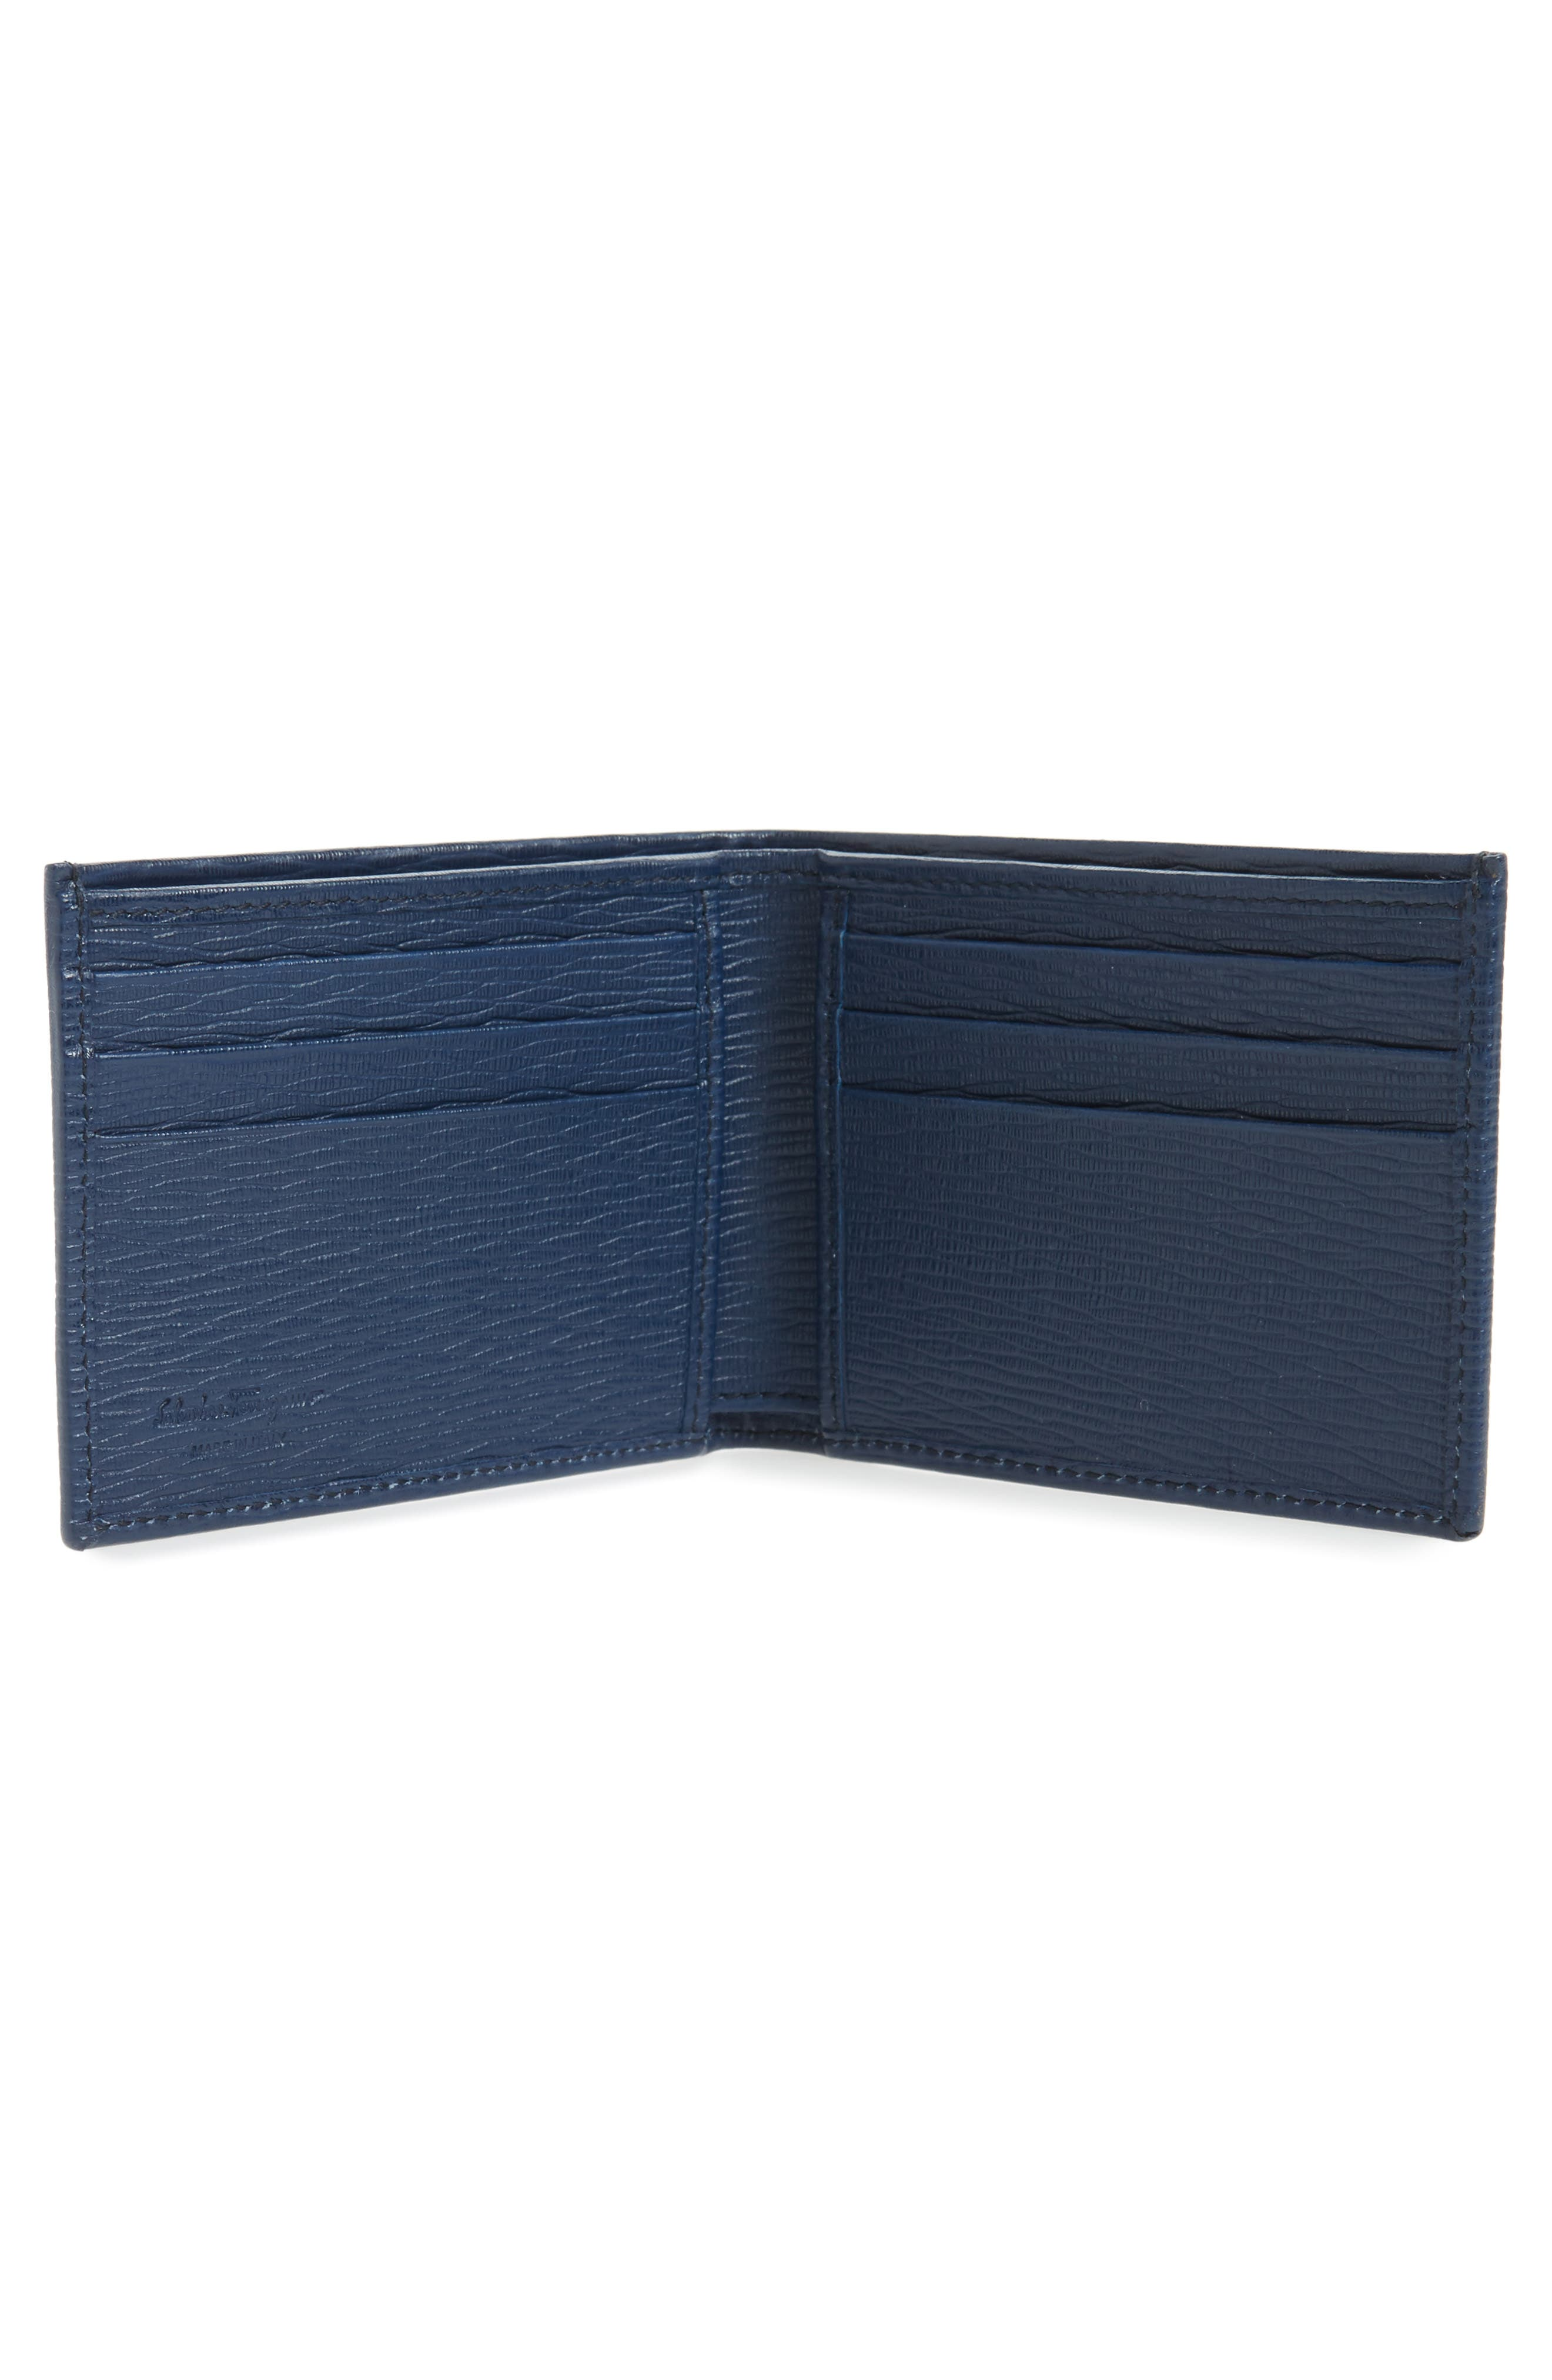 Revival Bifold Leather Wallet,                             Alternate thumbnail 2, color,                             BLUE